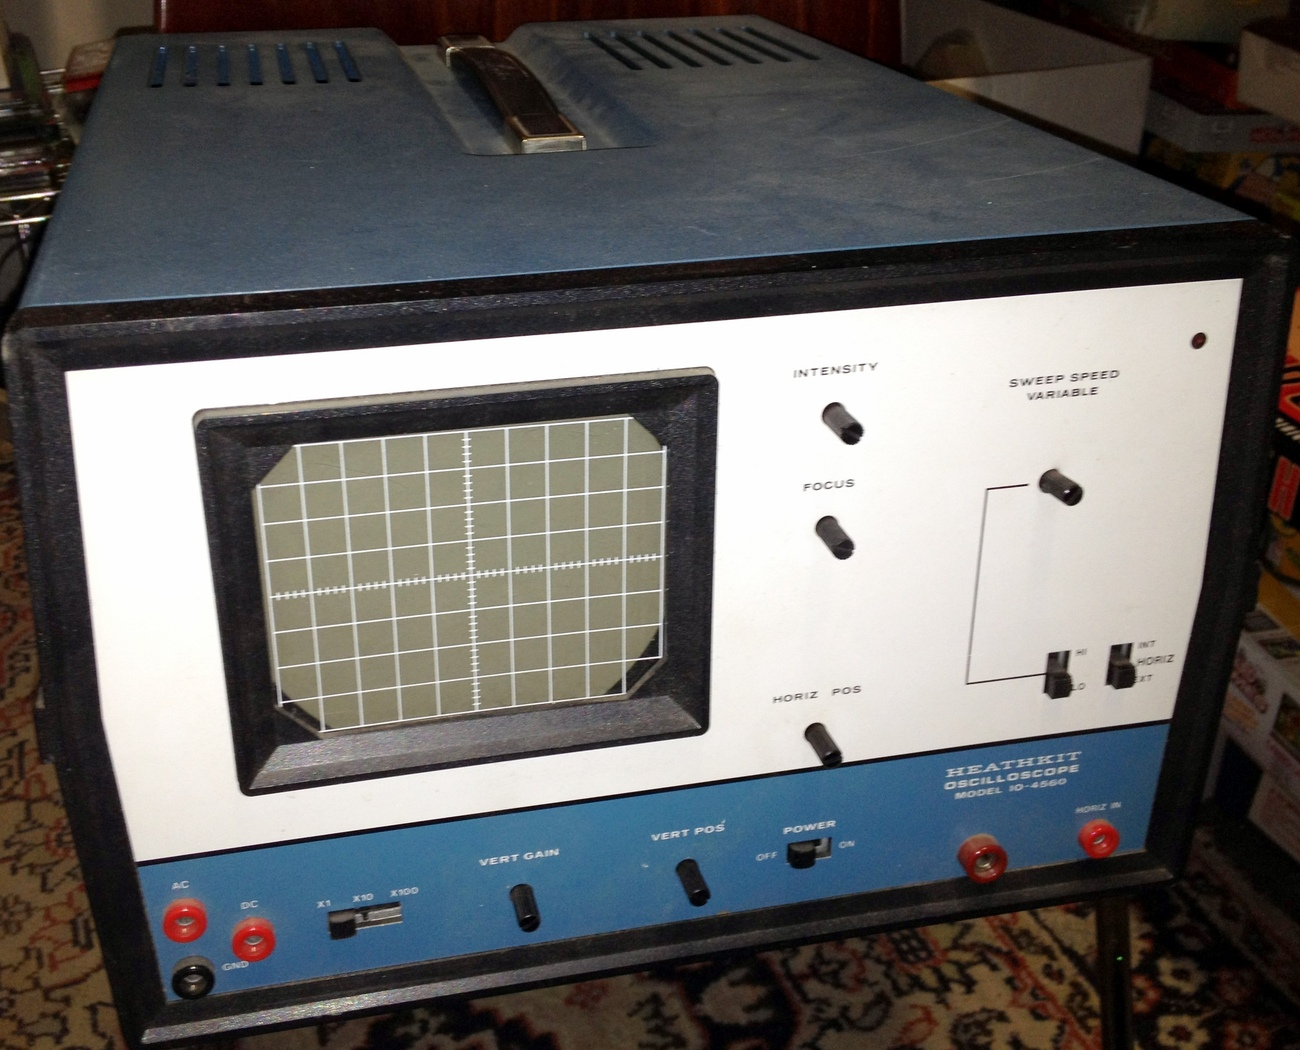 Heathkit Oscilloscope Model IO-4560